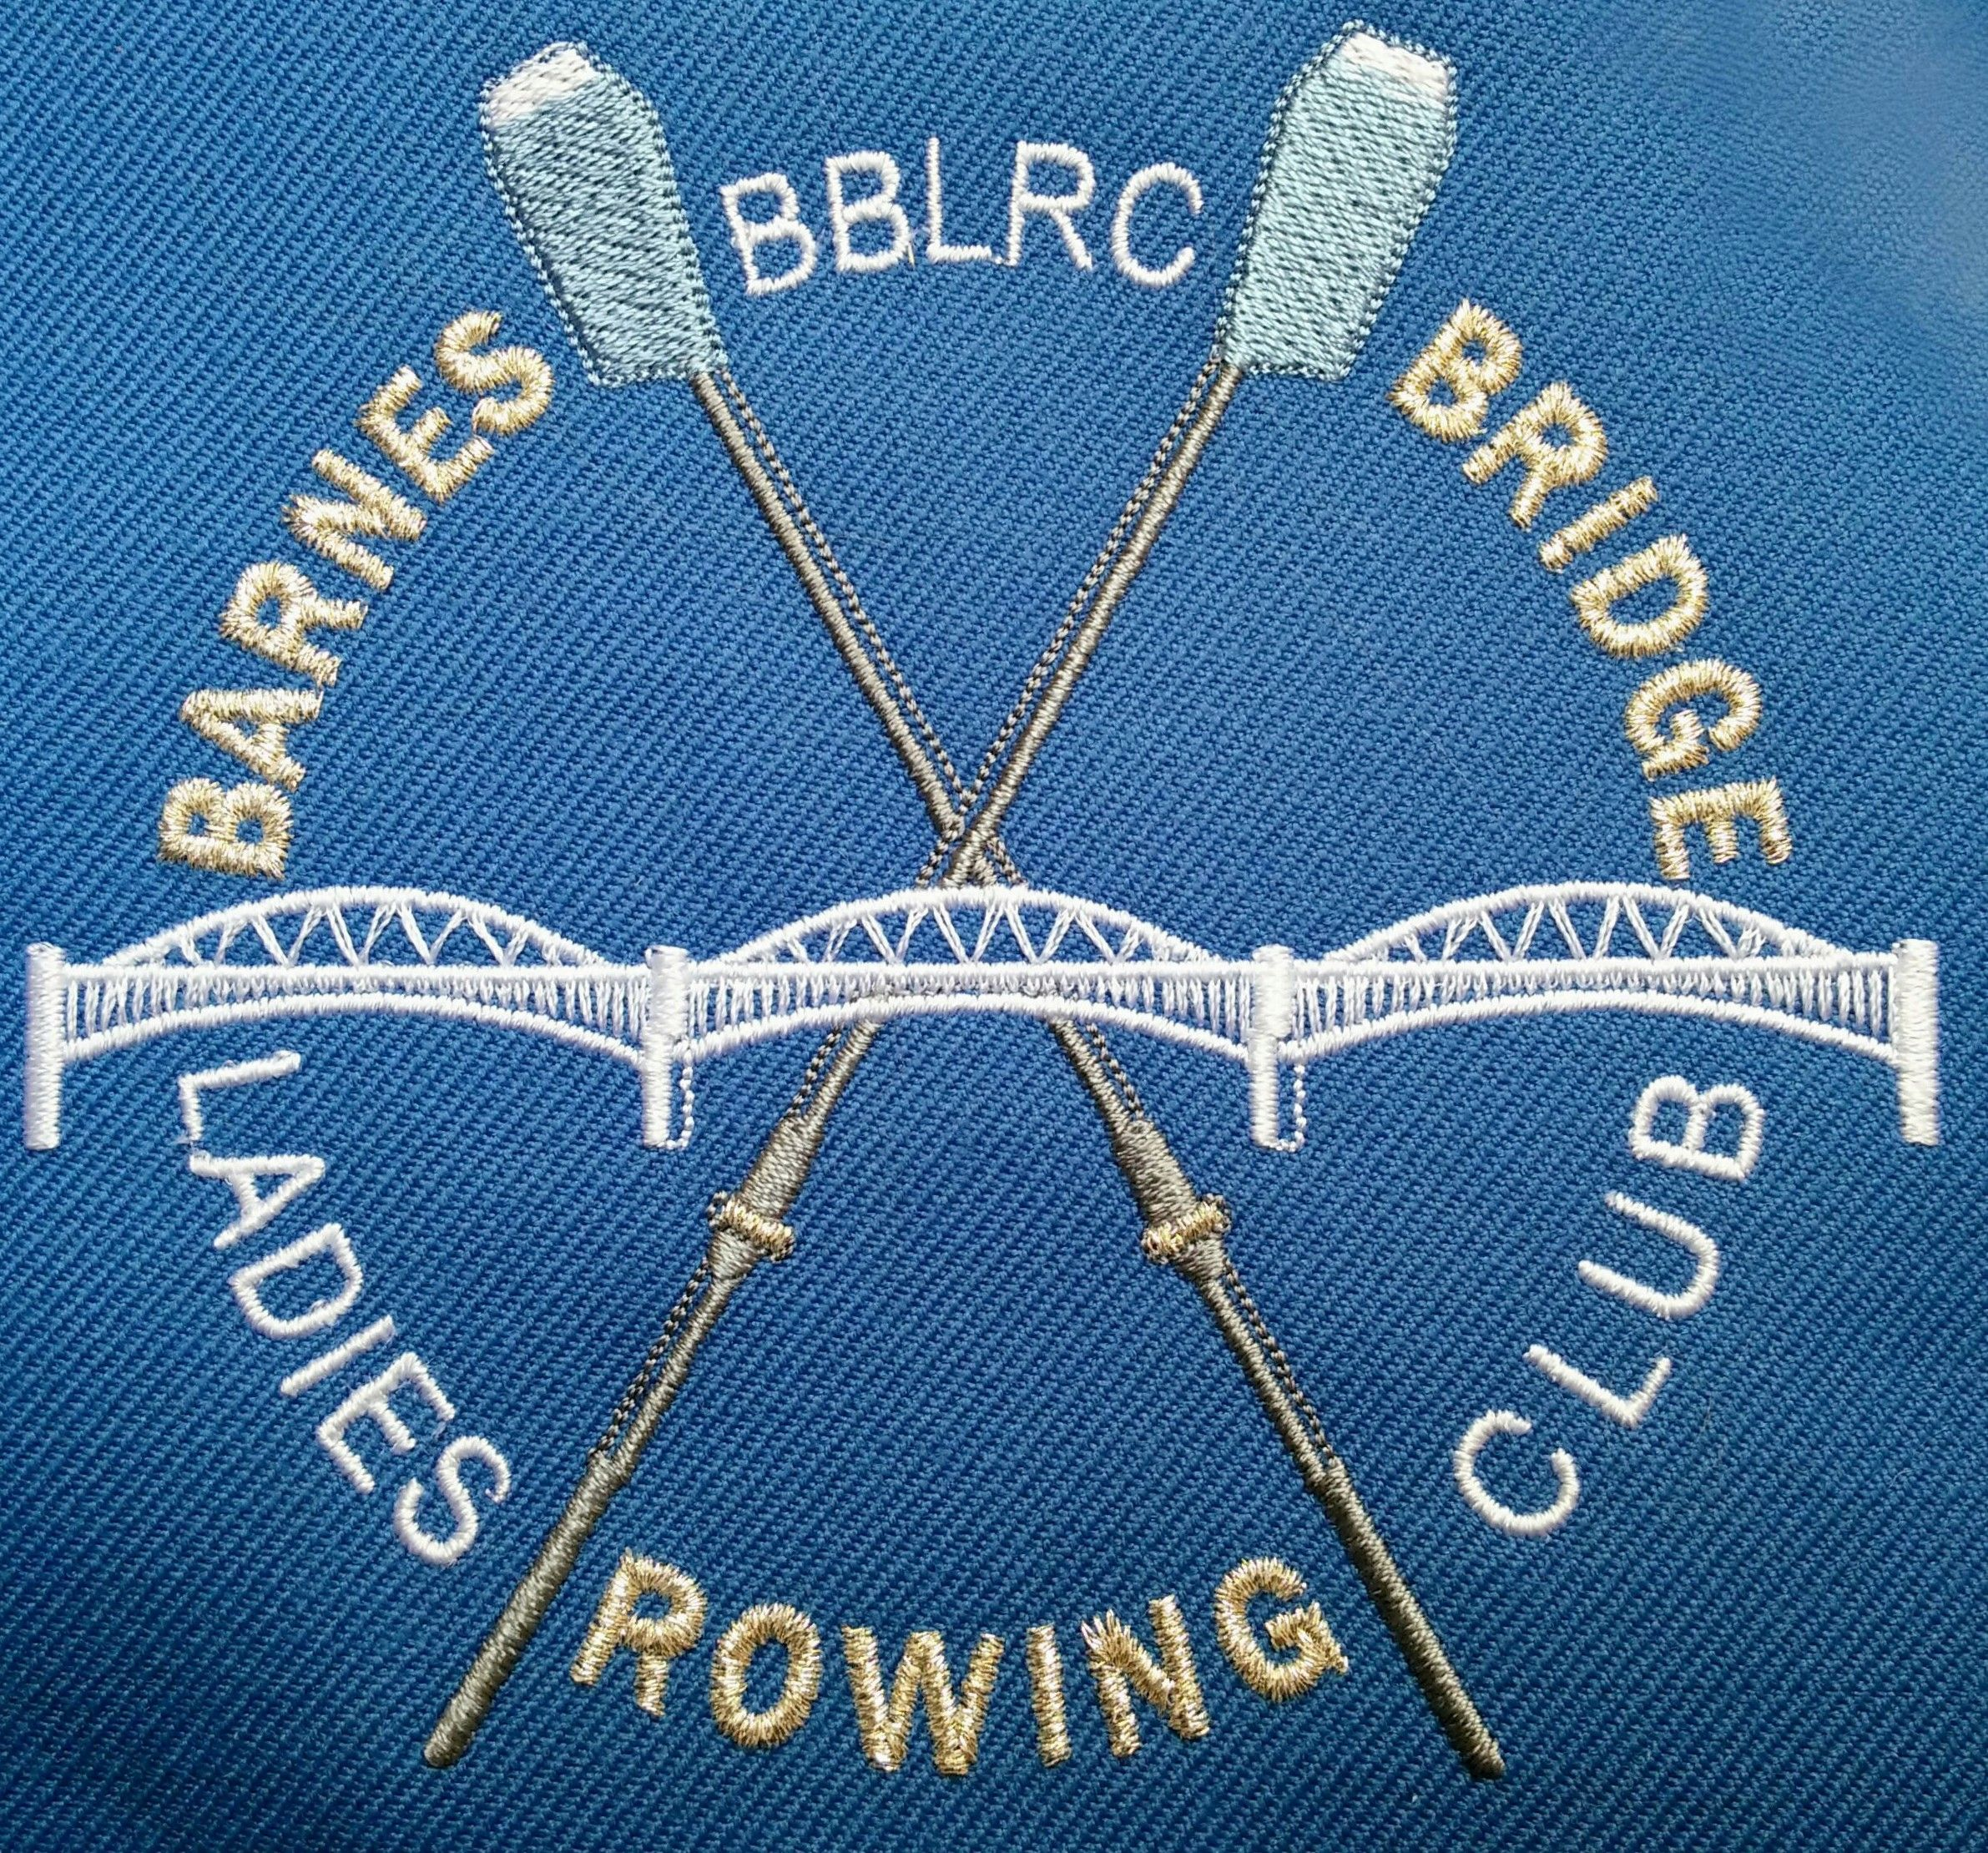 Barnes Bridge BBLRC embroidery by PHT for C&R blazers ...